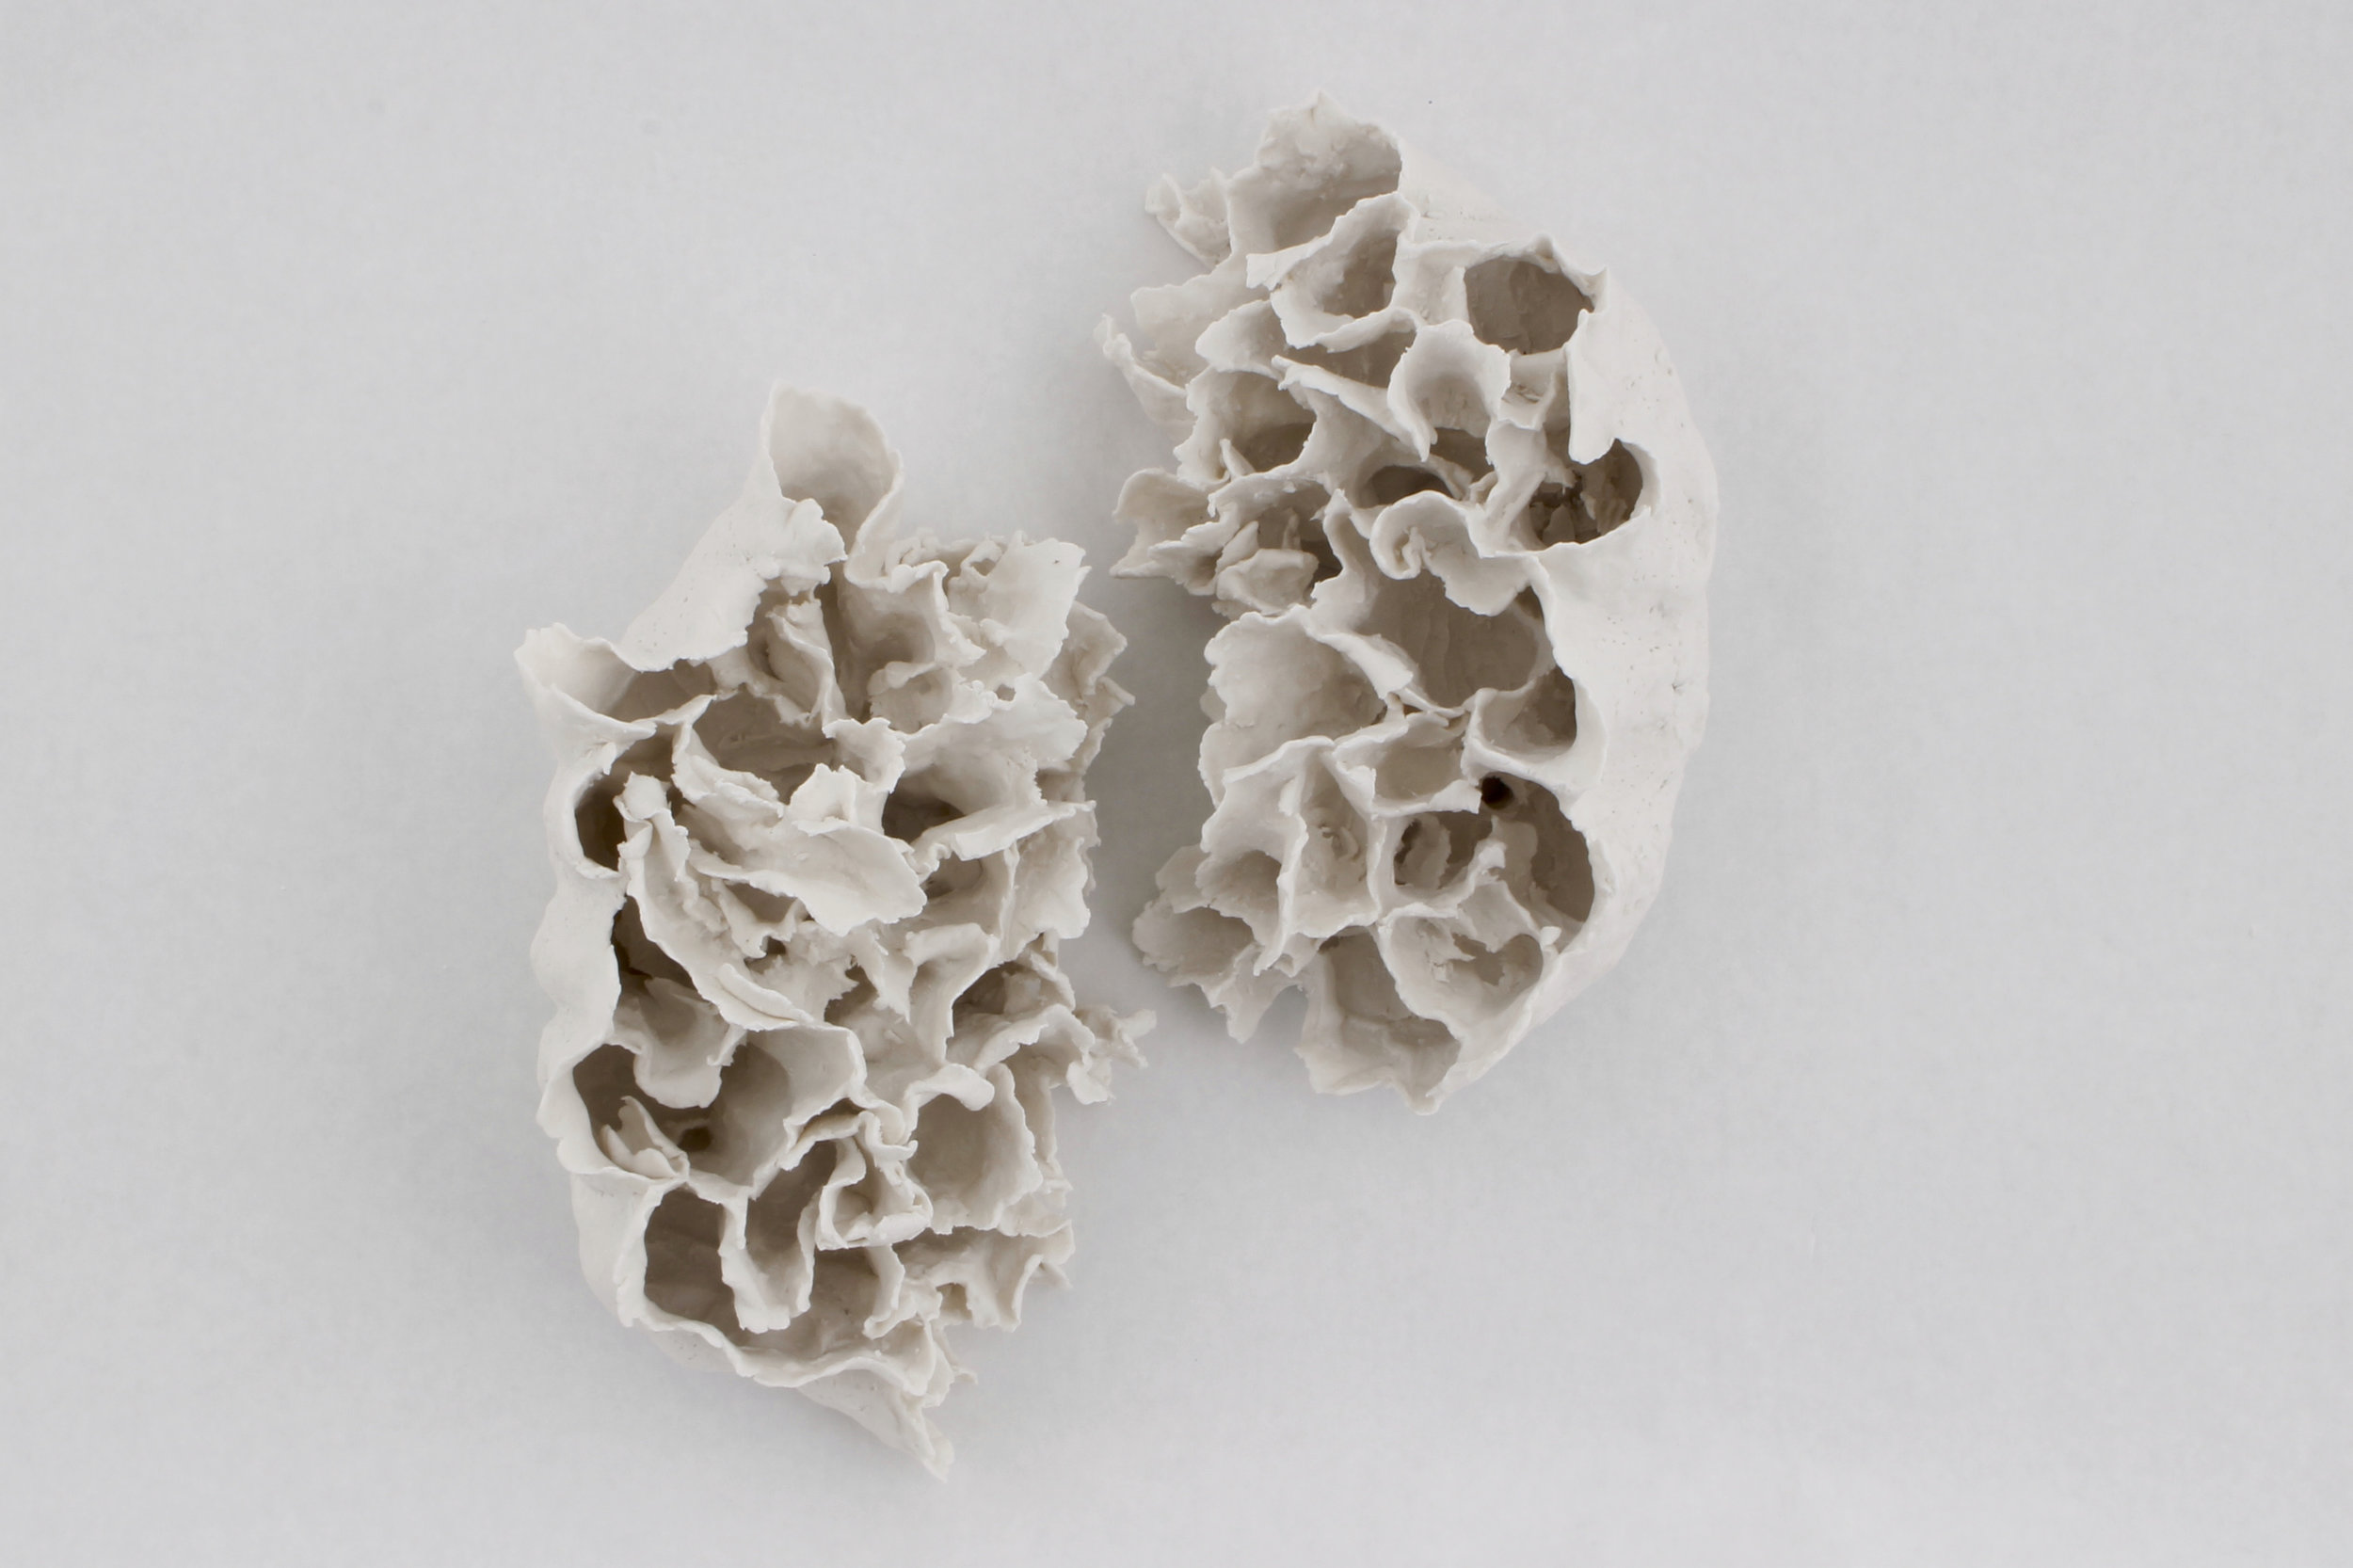 Renqian Yang , Clustered Light , 2018. Paper clay, fire to cone 6, electric kiln, 11 x 7 x 5 inches each ©Renqian Yang, courtesy Fou Gallery.